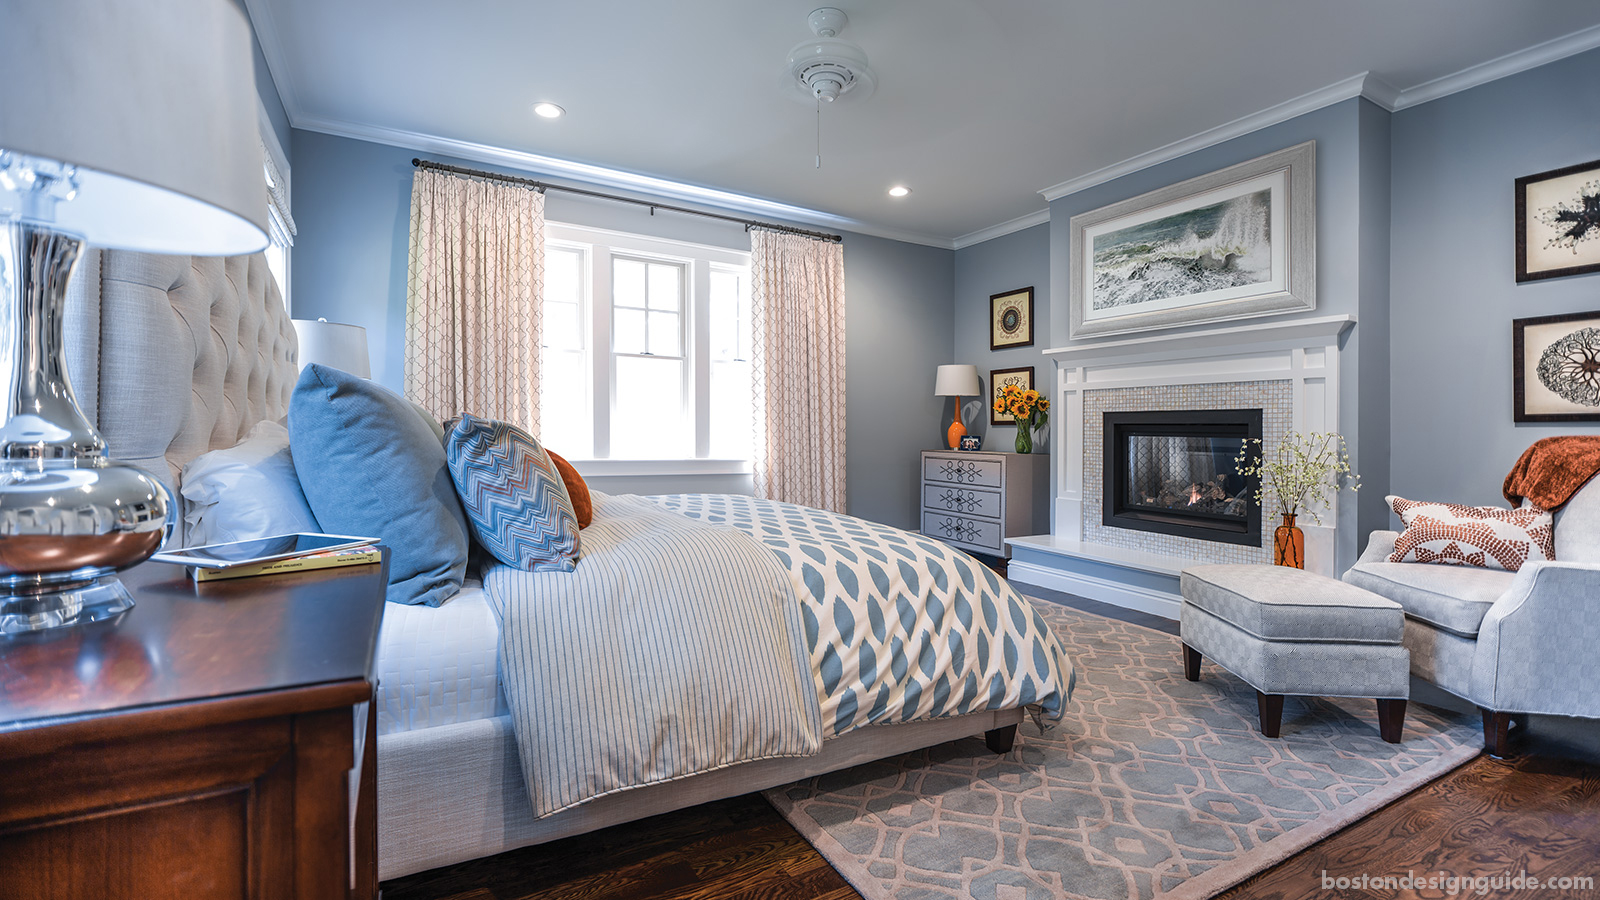 Master bedroom suite with patterns and mosaic tile fireplace